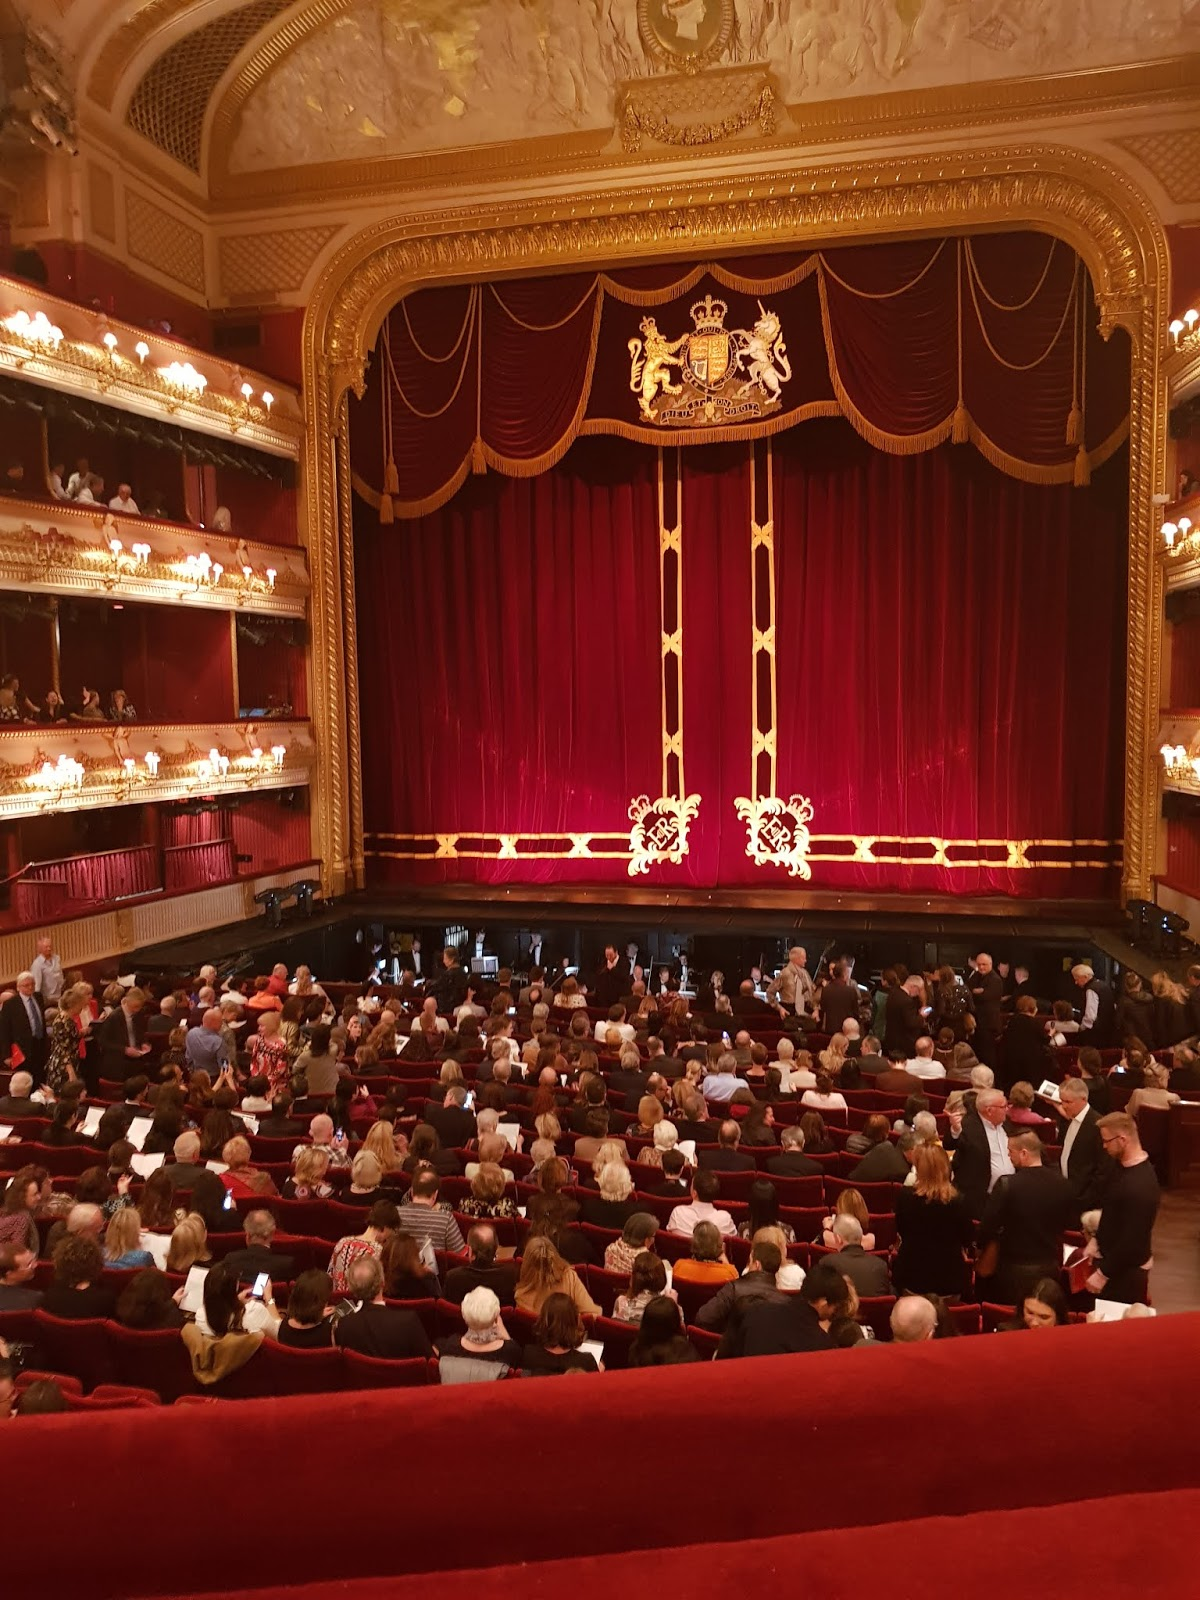 Waiting for curtain up at the Royal Opera House in London